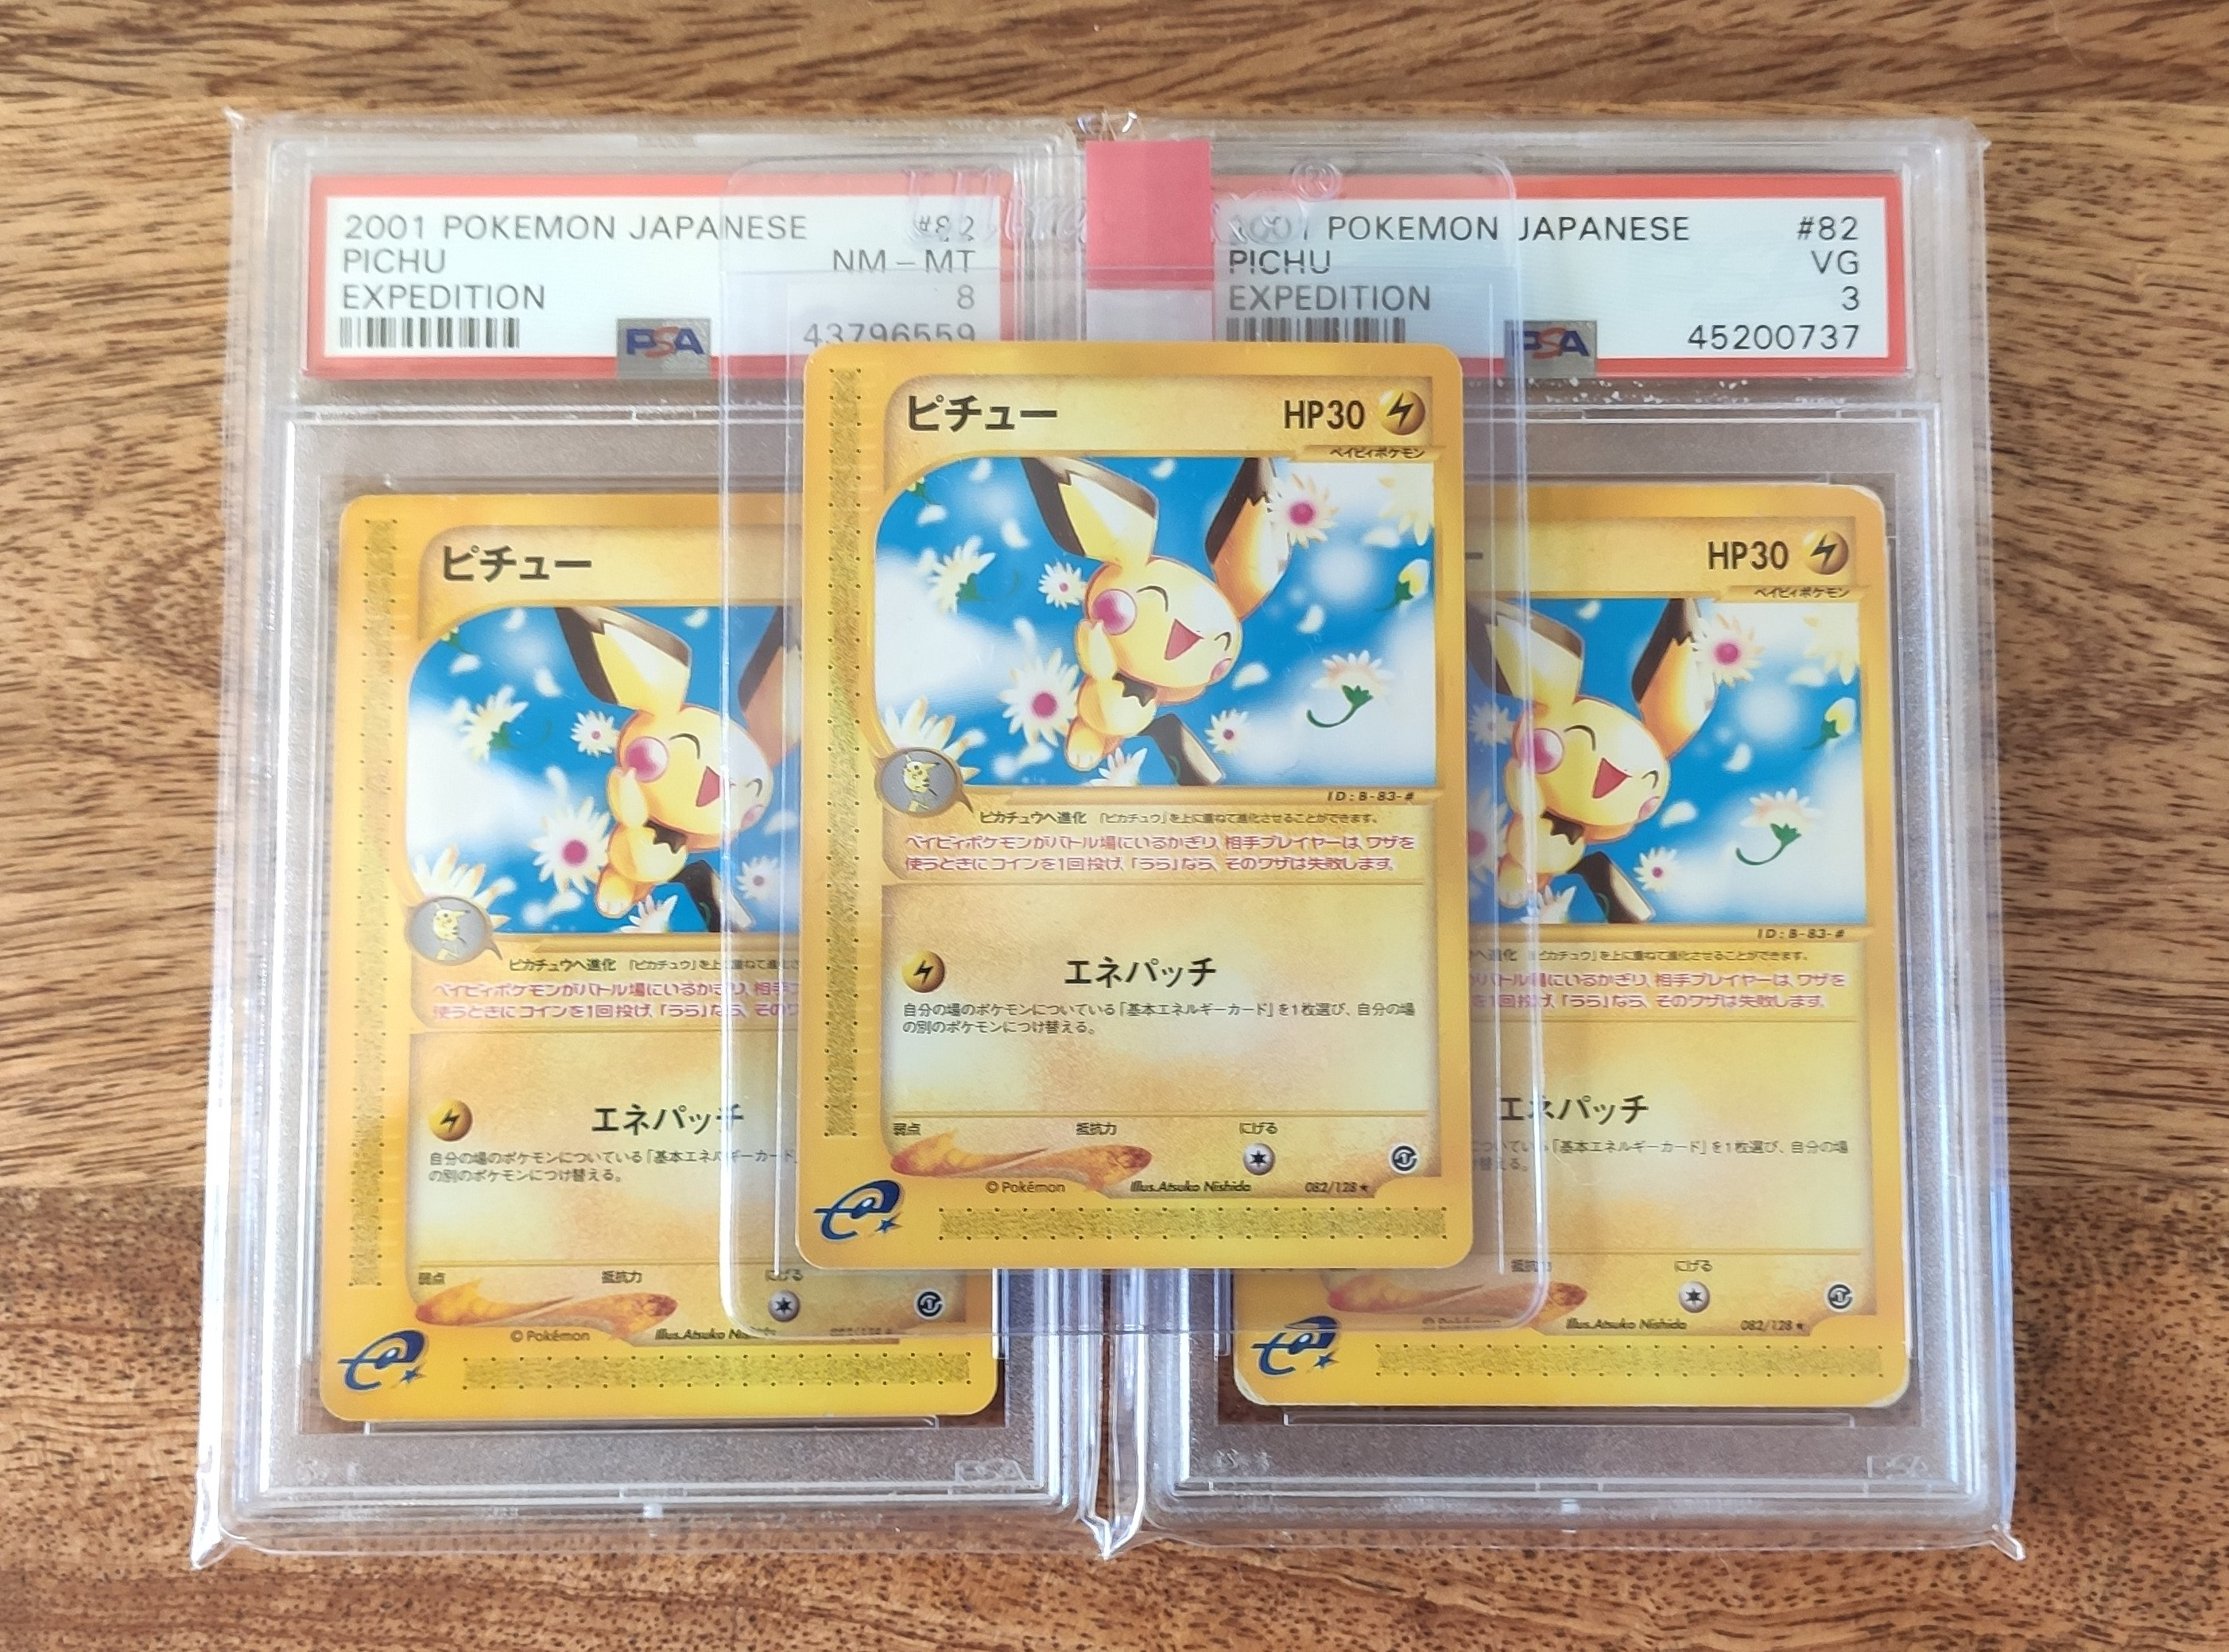 My unlimited E1 Pichu cards (picture from my Instagram feed).